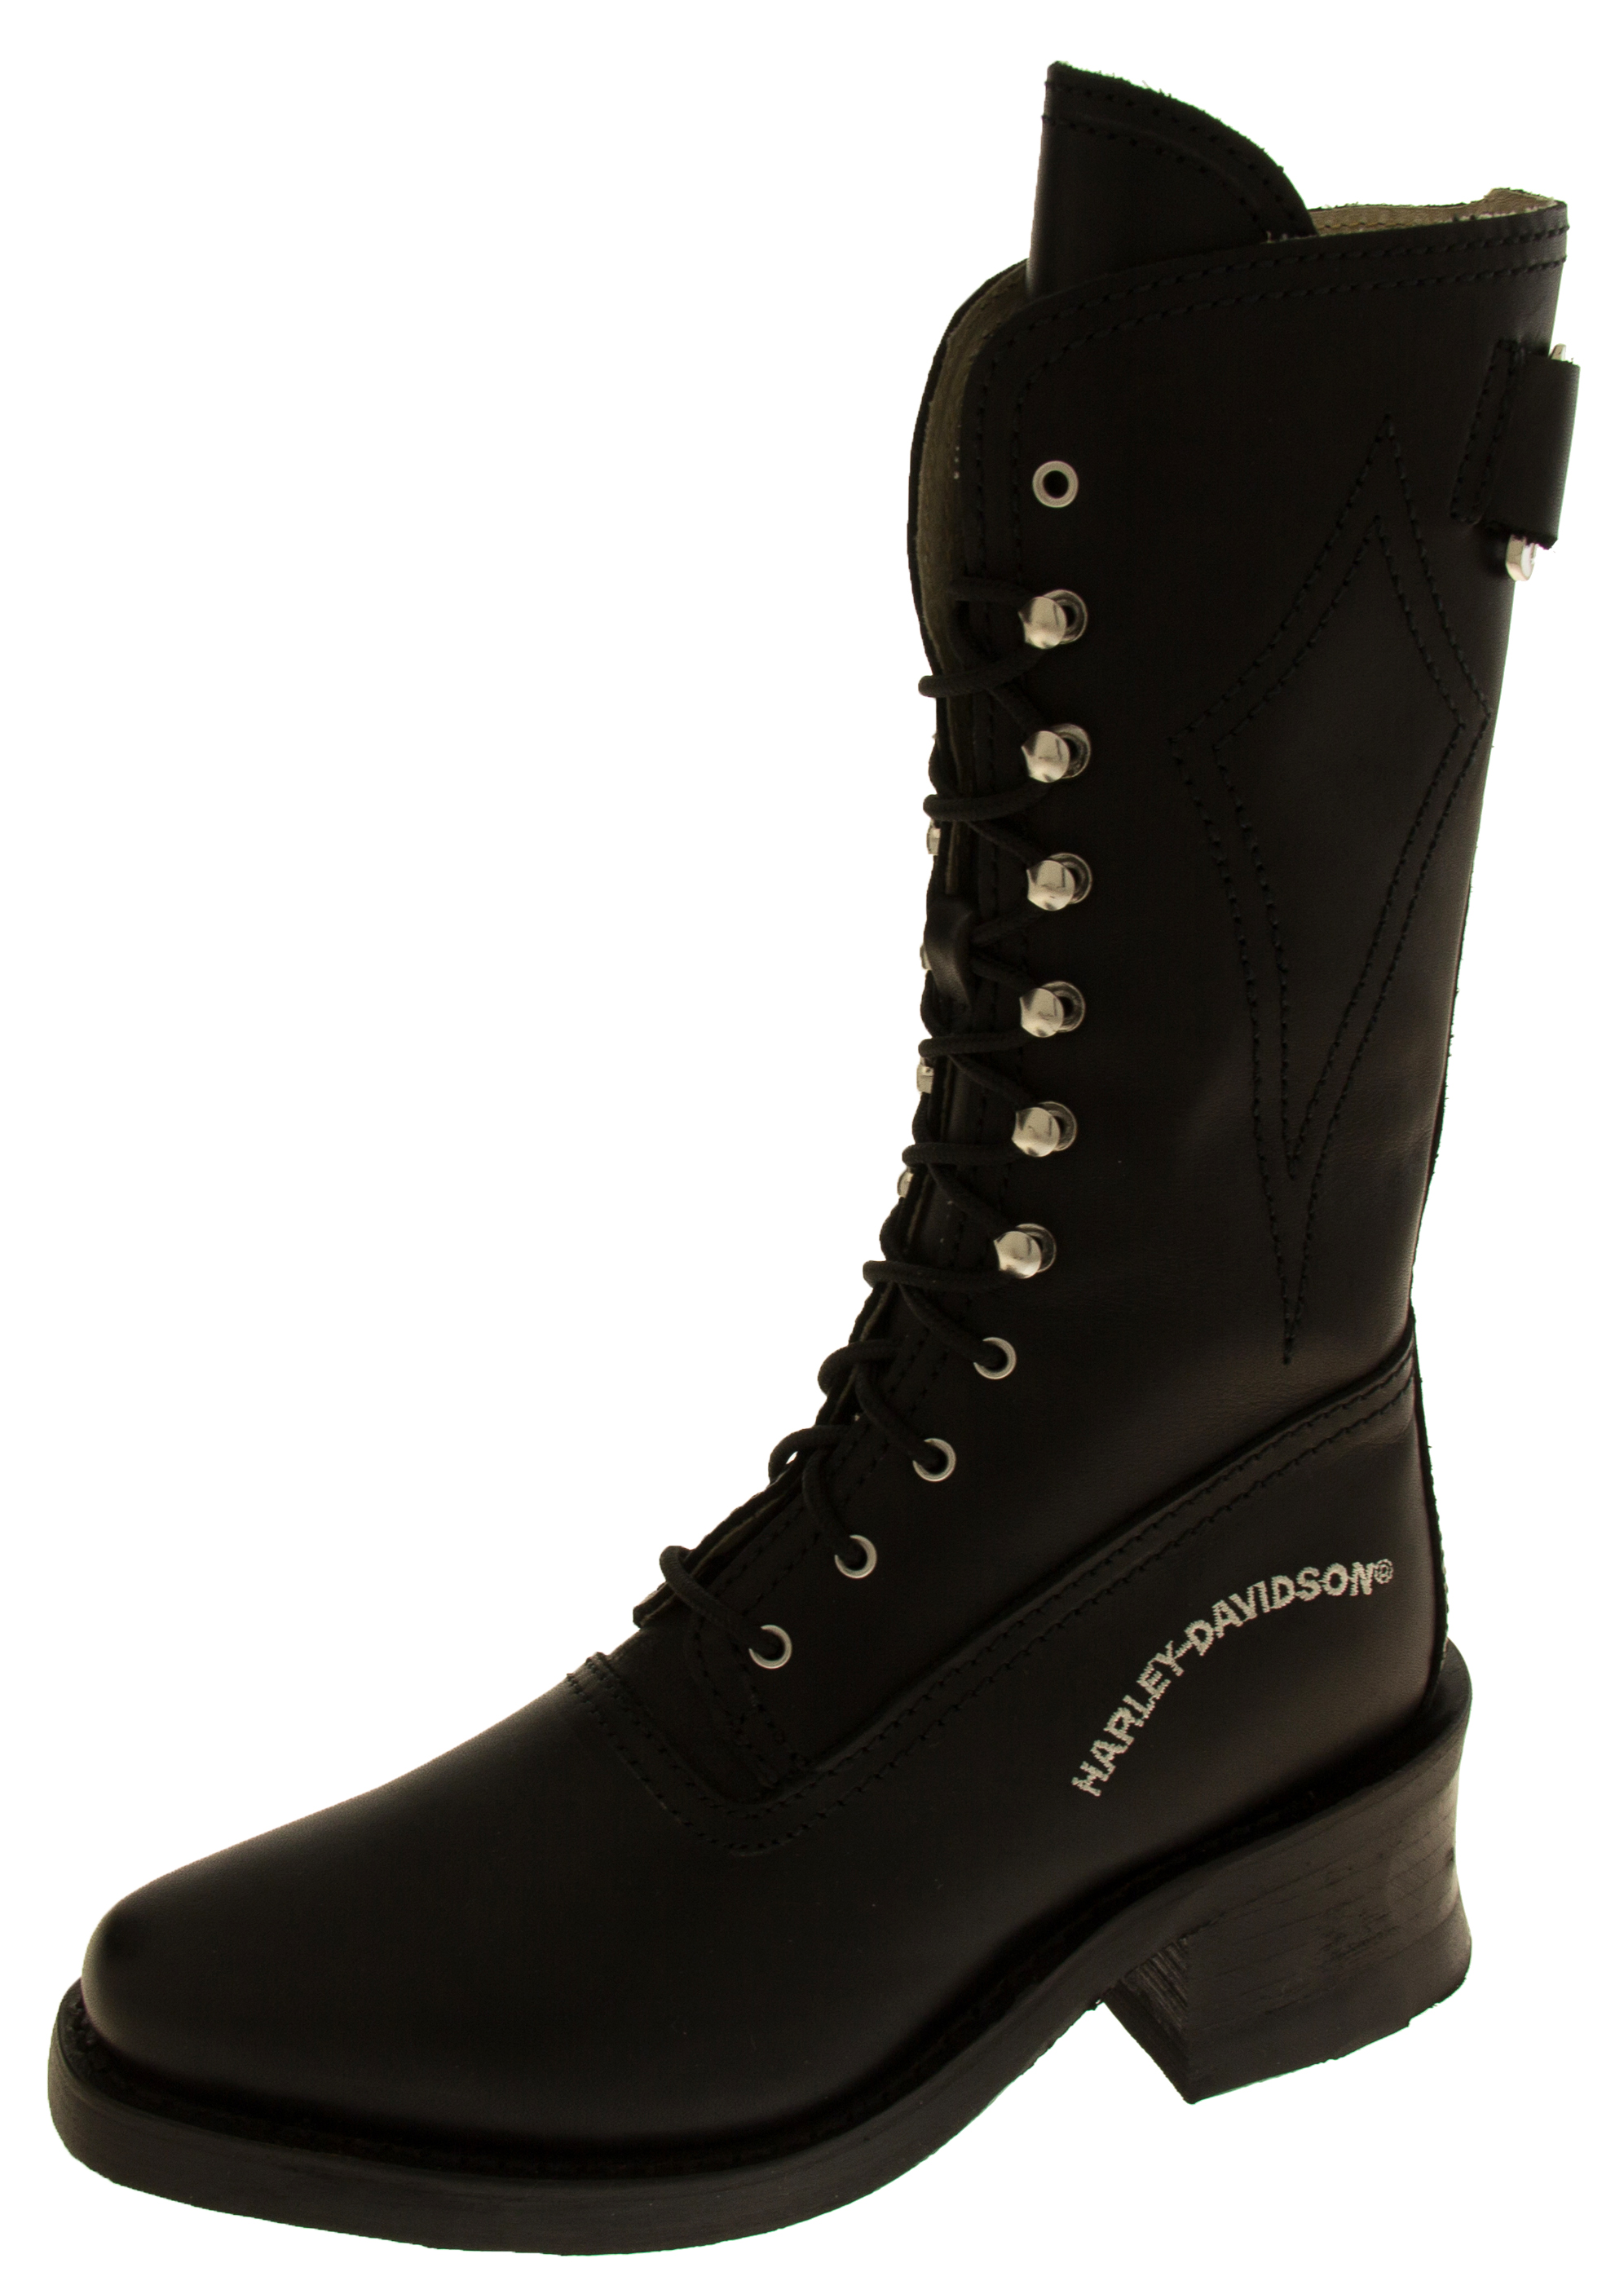 Luxury  About New Harley Davidson Iroquois Womens Biker Boots ALL SIZES